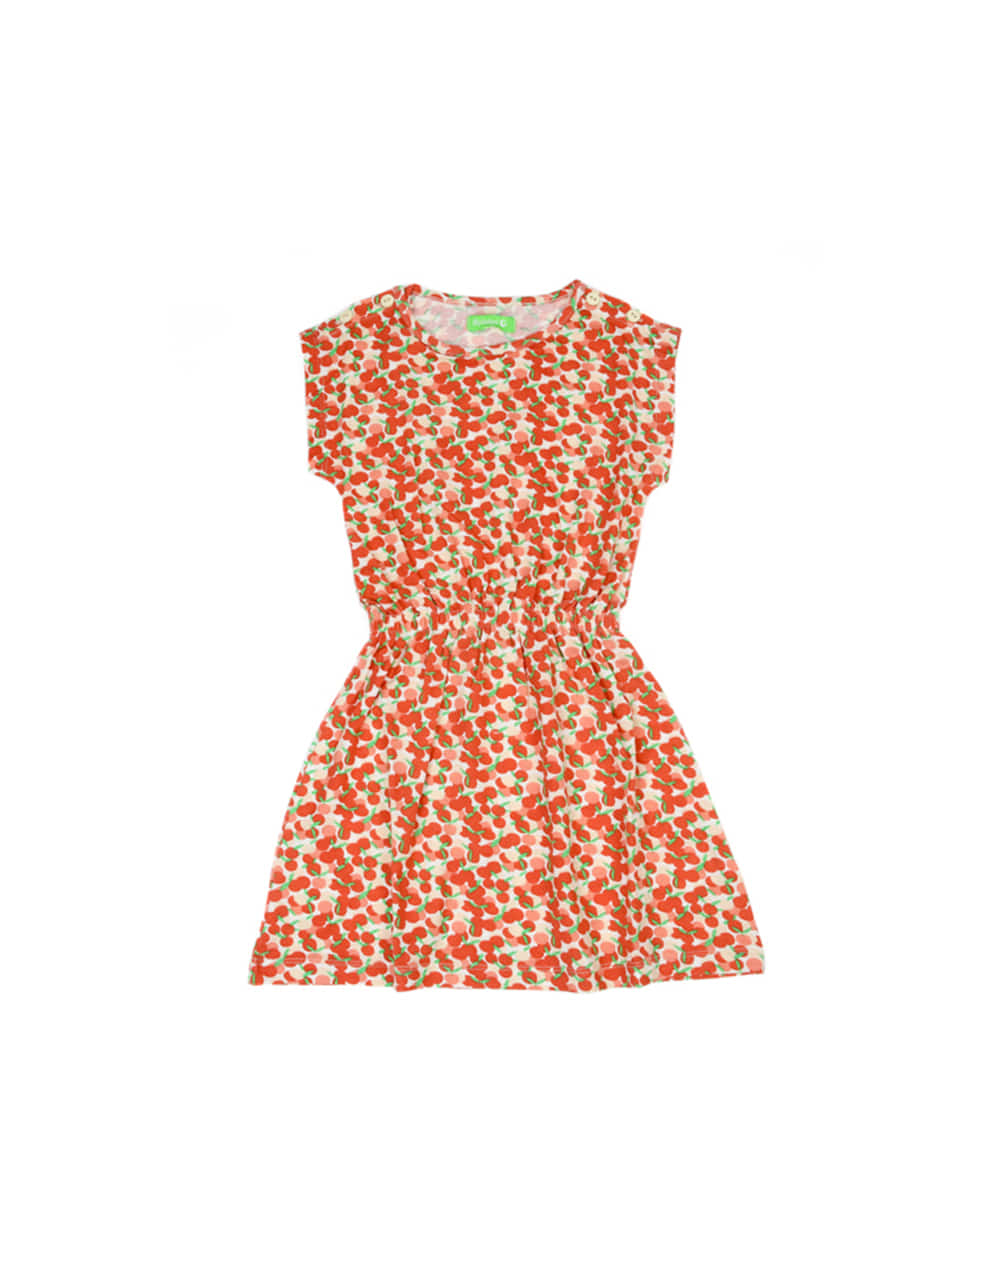 LILY BALOU  Yara  Dress    Summer Berries